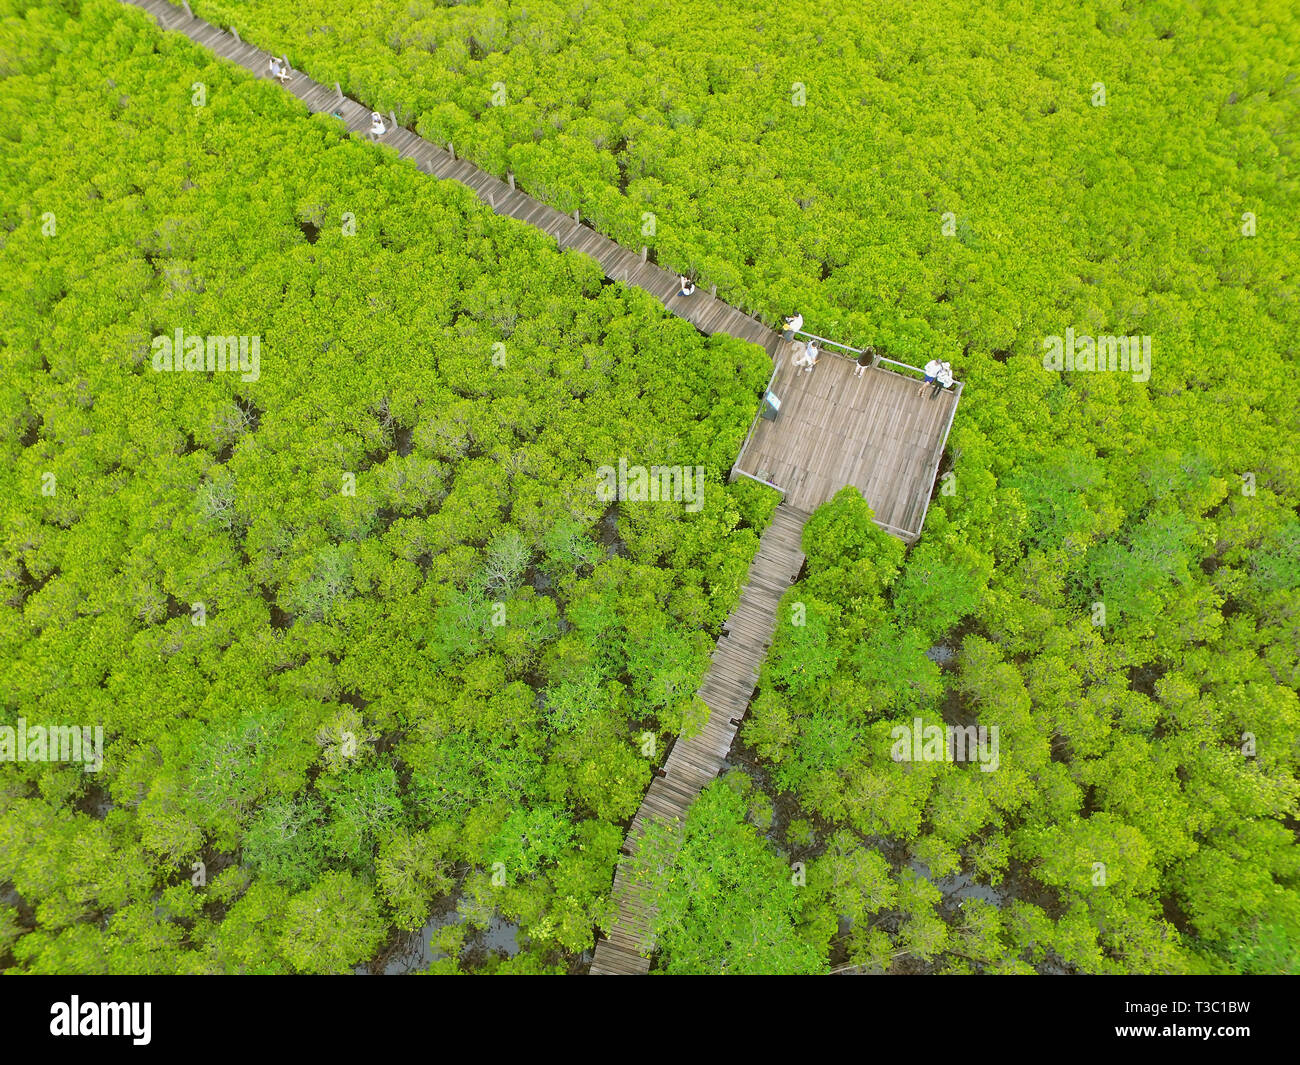 Drone Photography of the Bird Eye View of Spurred Mangrove Forest with Many Visitors Enjoy the View on Wooden boardwalk, Rayong, Thailand - Stock Image